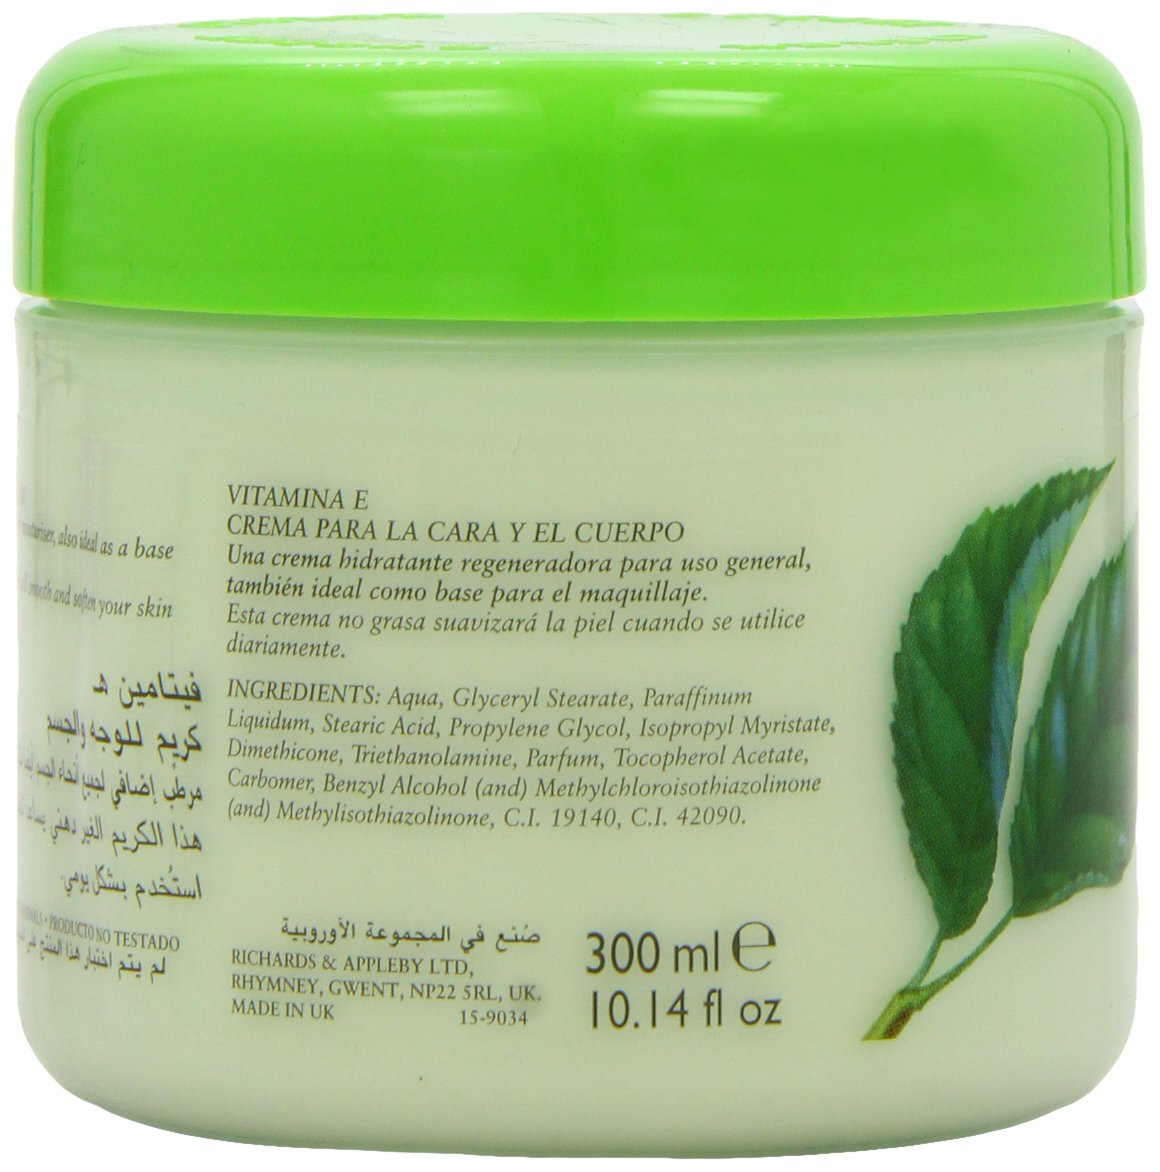 Amazon.com: Cyclax Nature Pure Vitamin E Face and Body Cream 300ml: Health & Personal Care